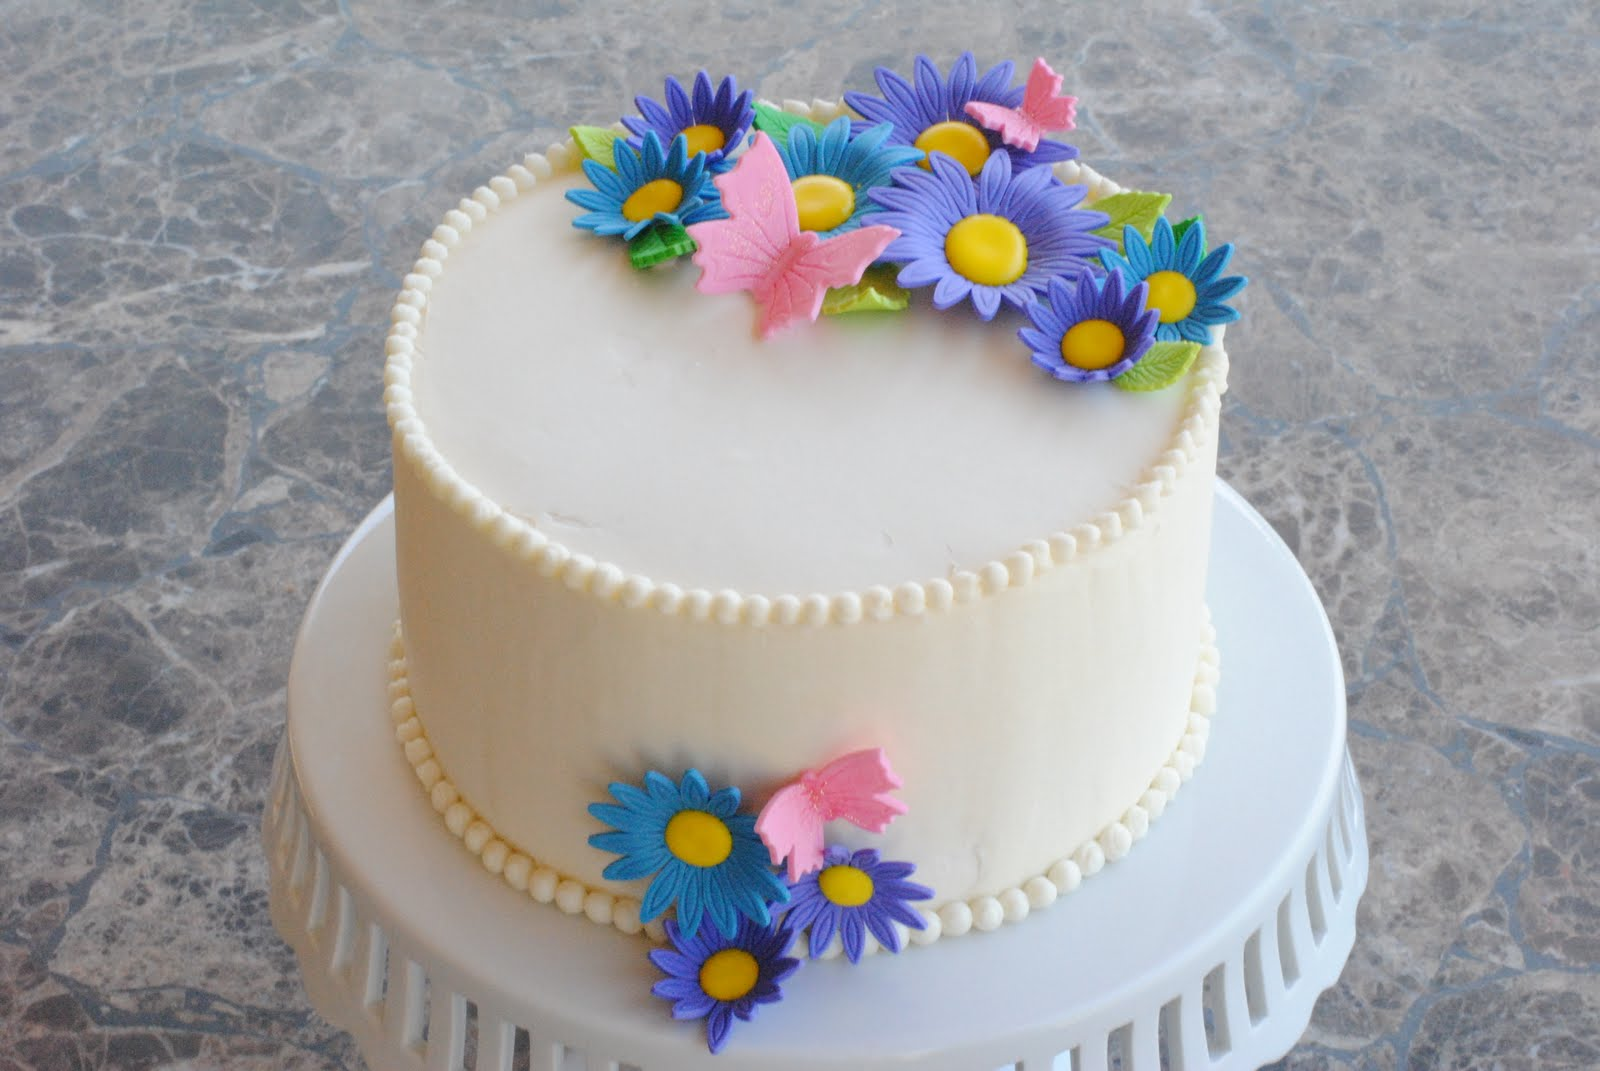 Simple Cake Designs For Girl Birthday : A Simple Birthday Cake My FaVoriTe CaKe PlaCe